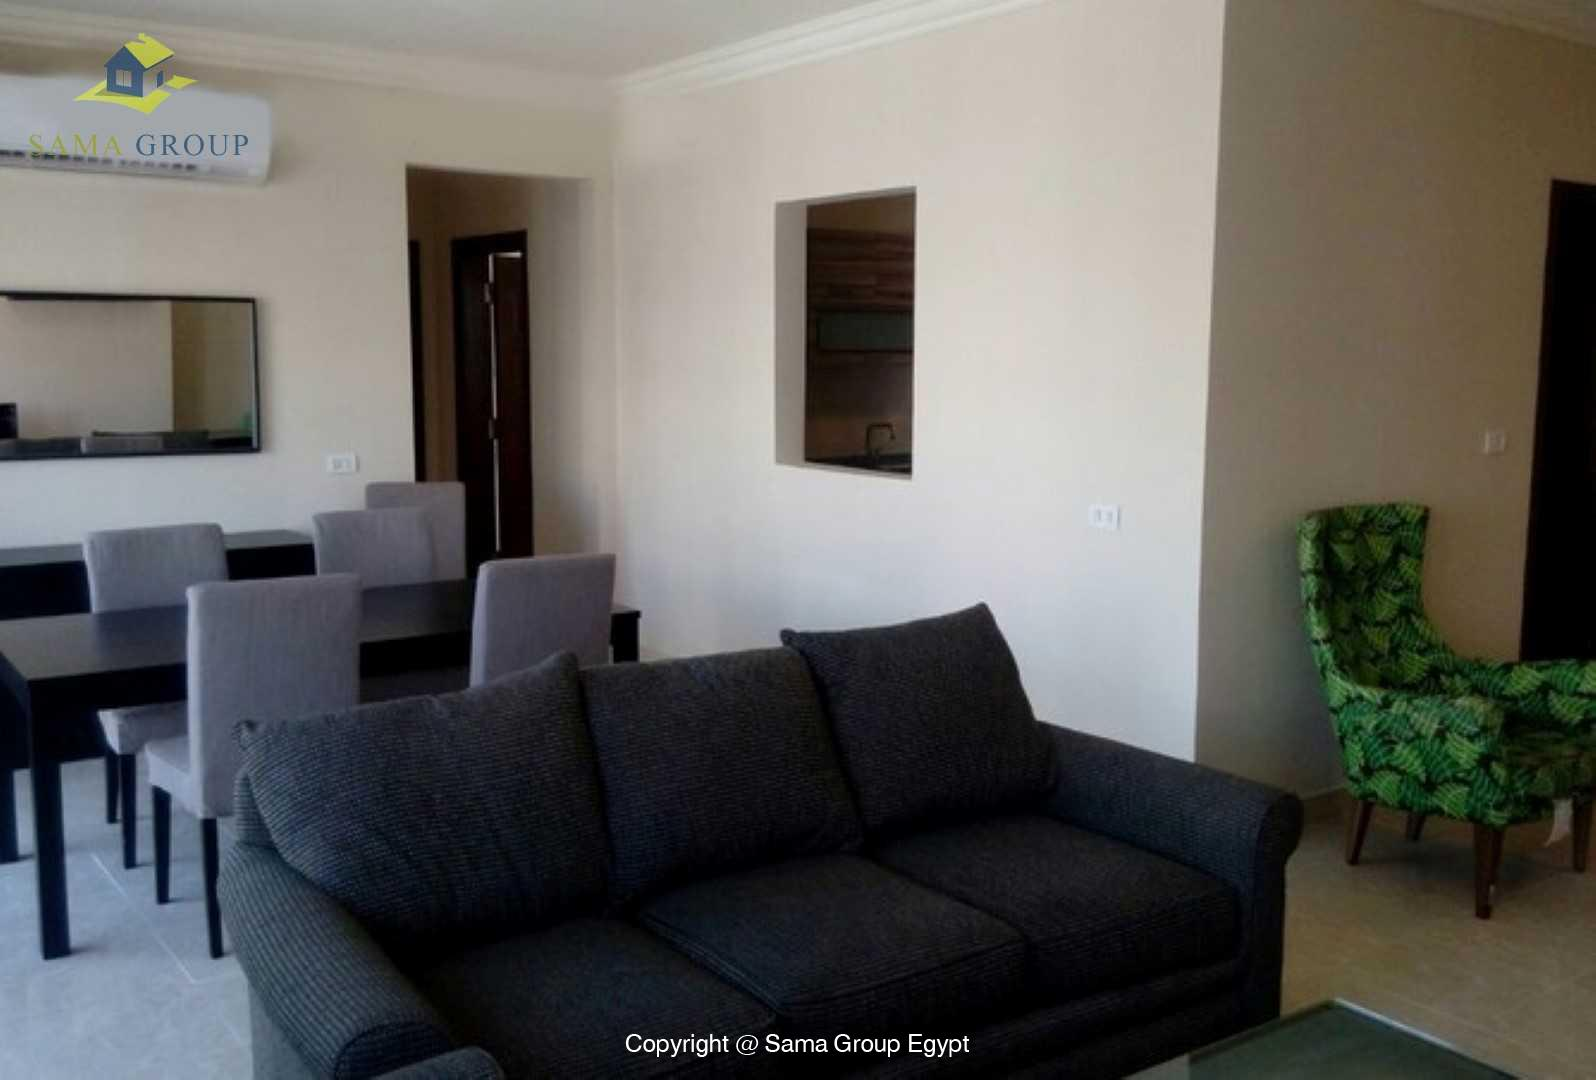 Penthouse For Rent In New Cairo,Modern Furnished,Penthouse NO #1